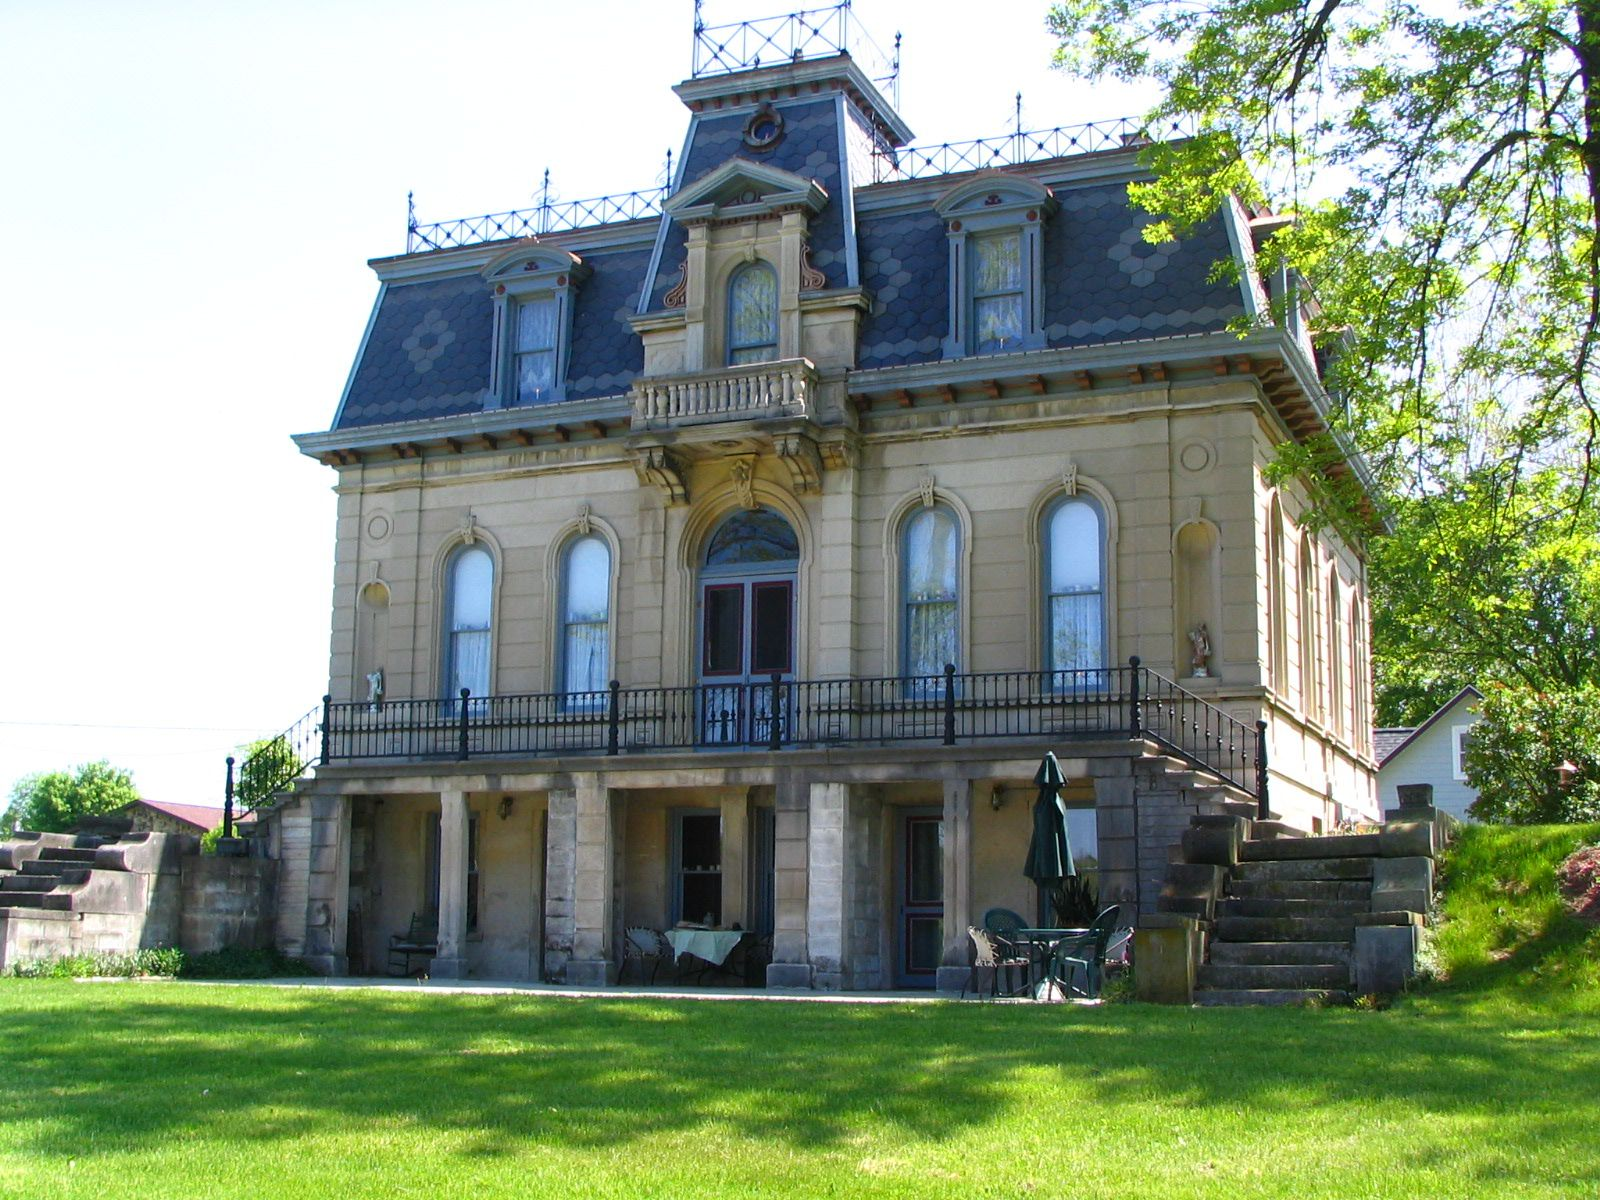 Architectural styles of southern indiana second empire for House architecture styles